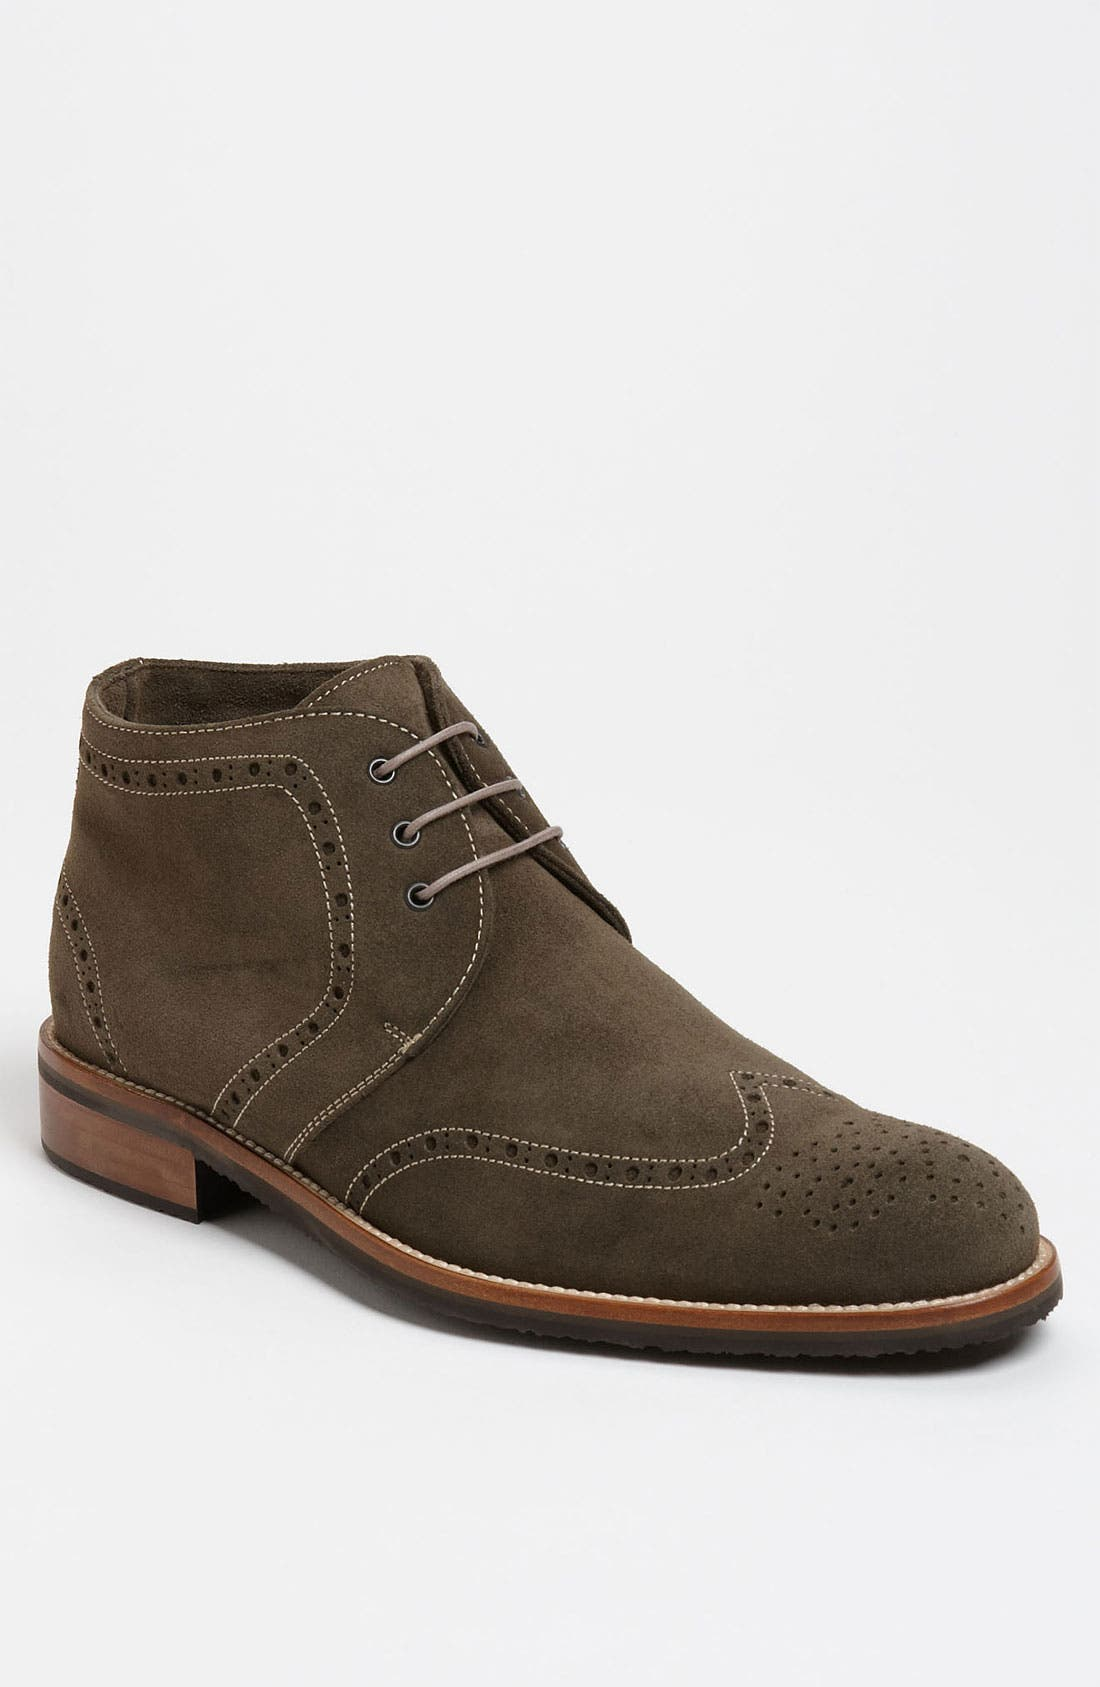 Alternate Image 1 Selected - Thomas Dean Suede Wingtip Chukka Boot (Online Only)